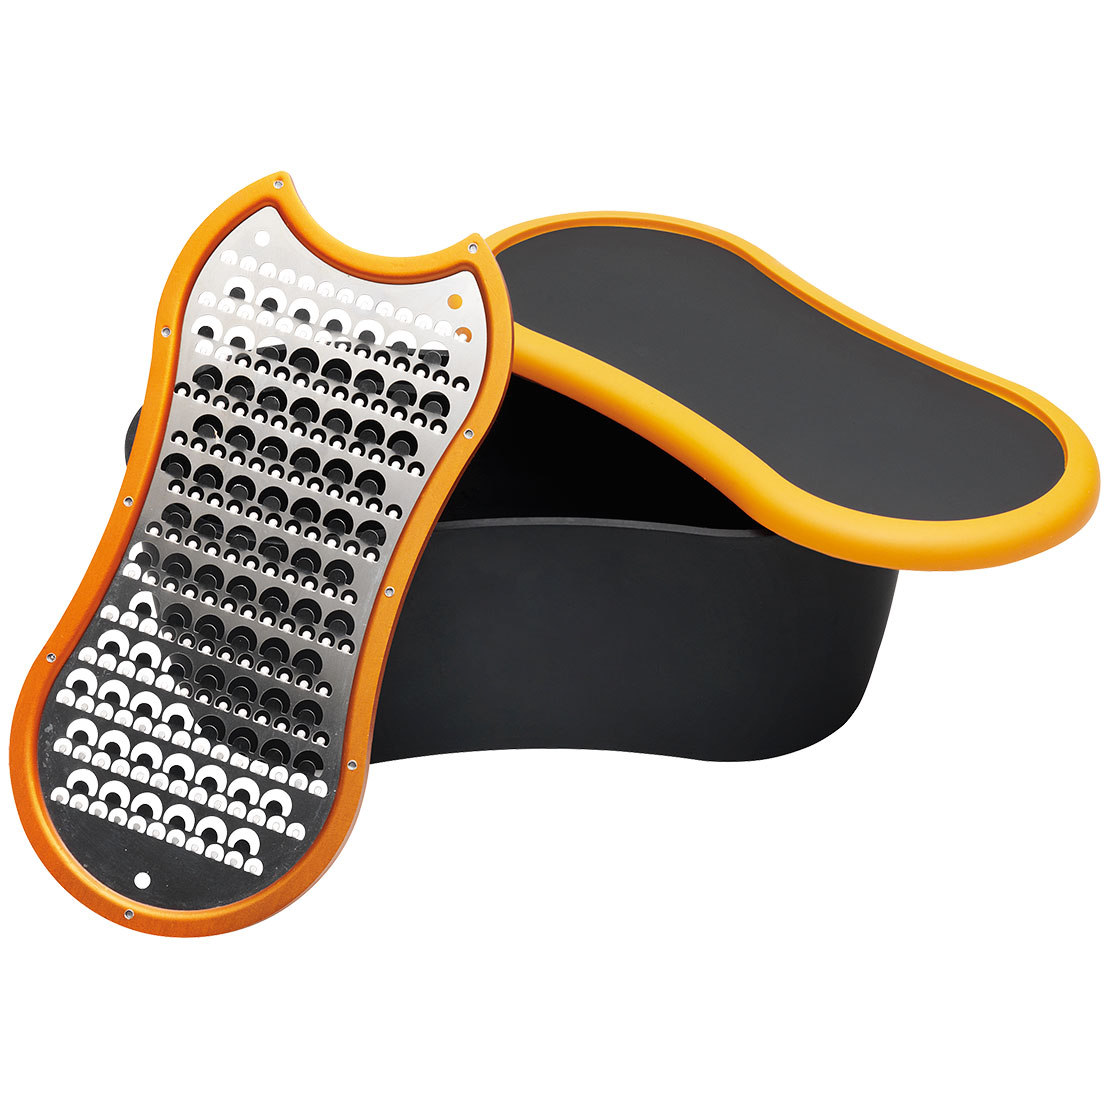 1003001-FunctionalForm-Grater-with-container-17-7-cm.jpg